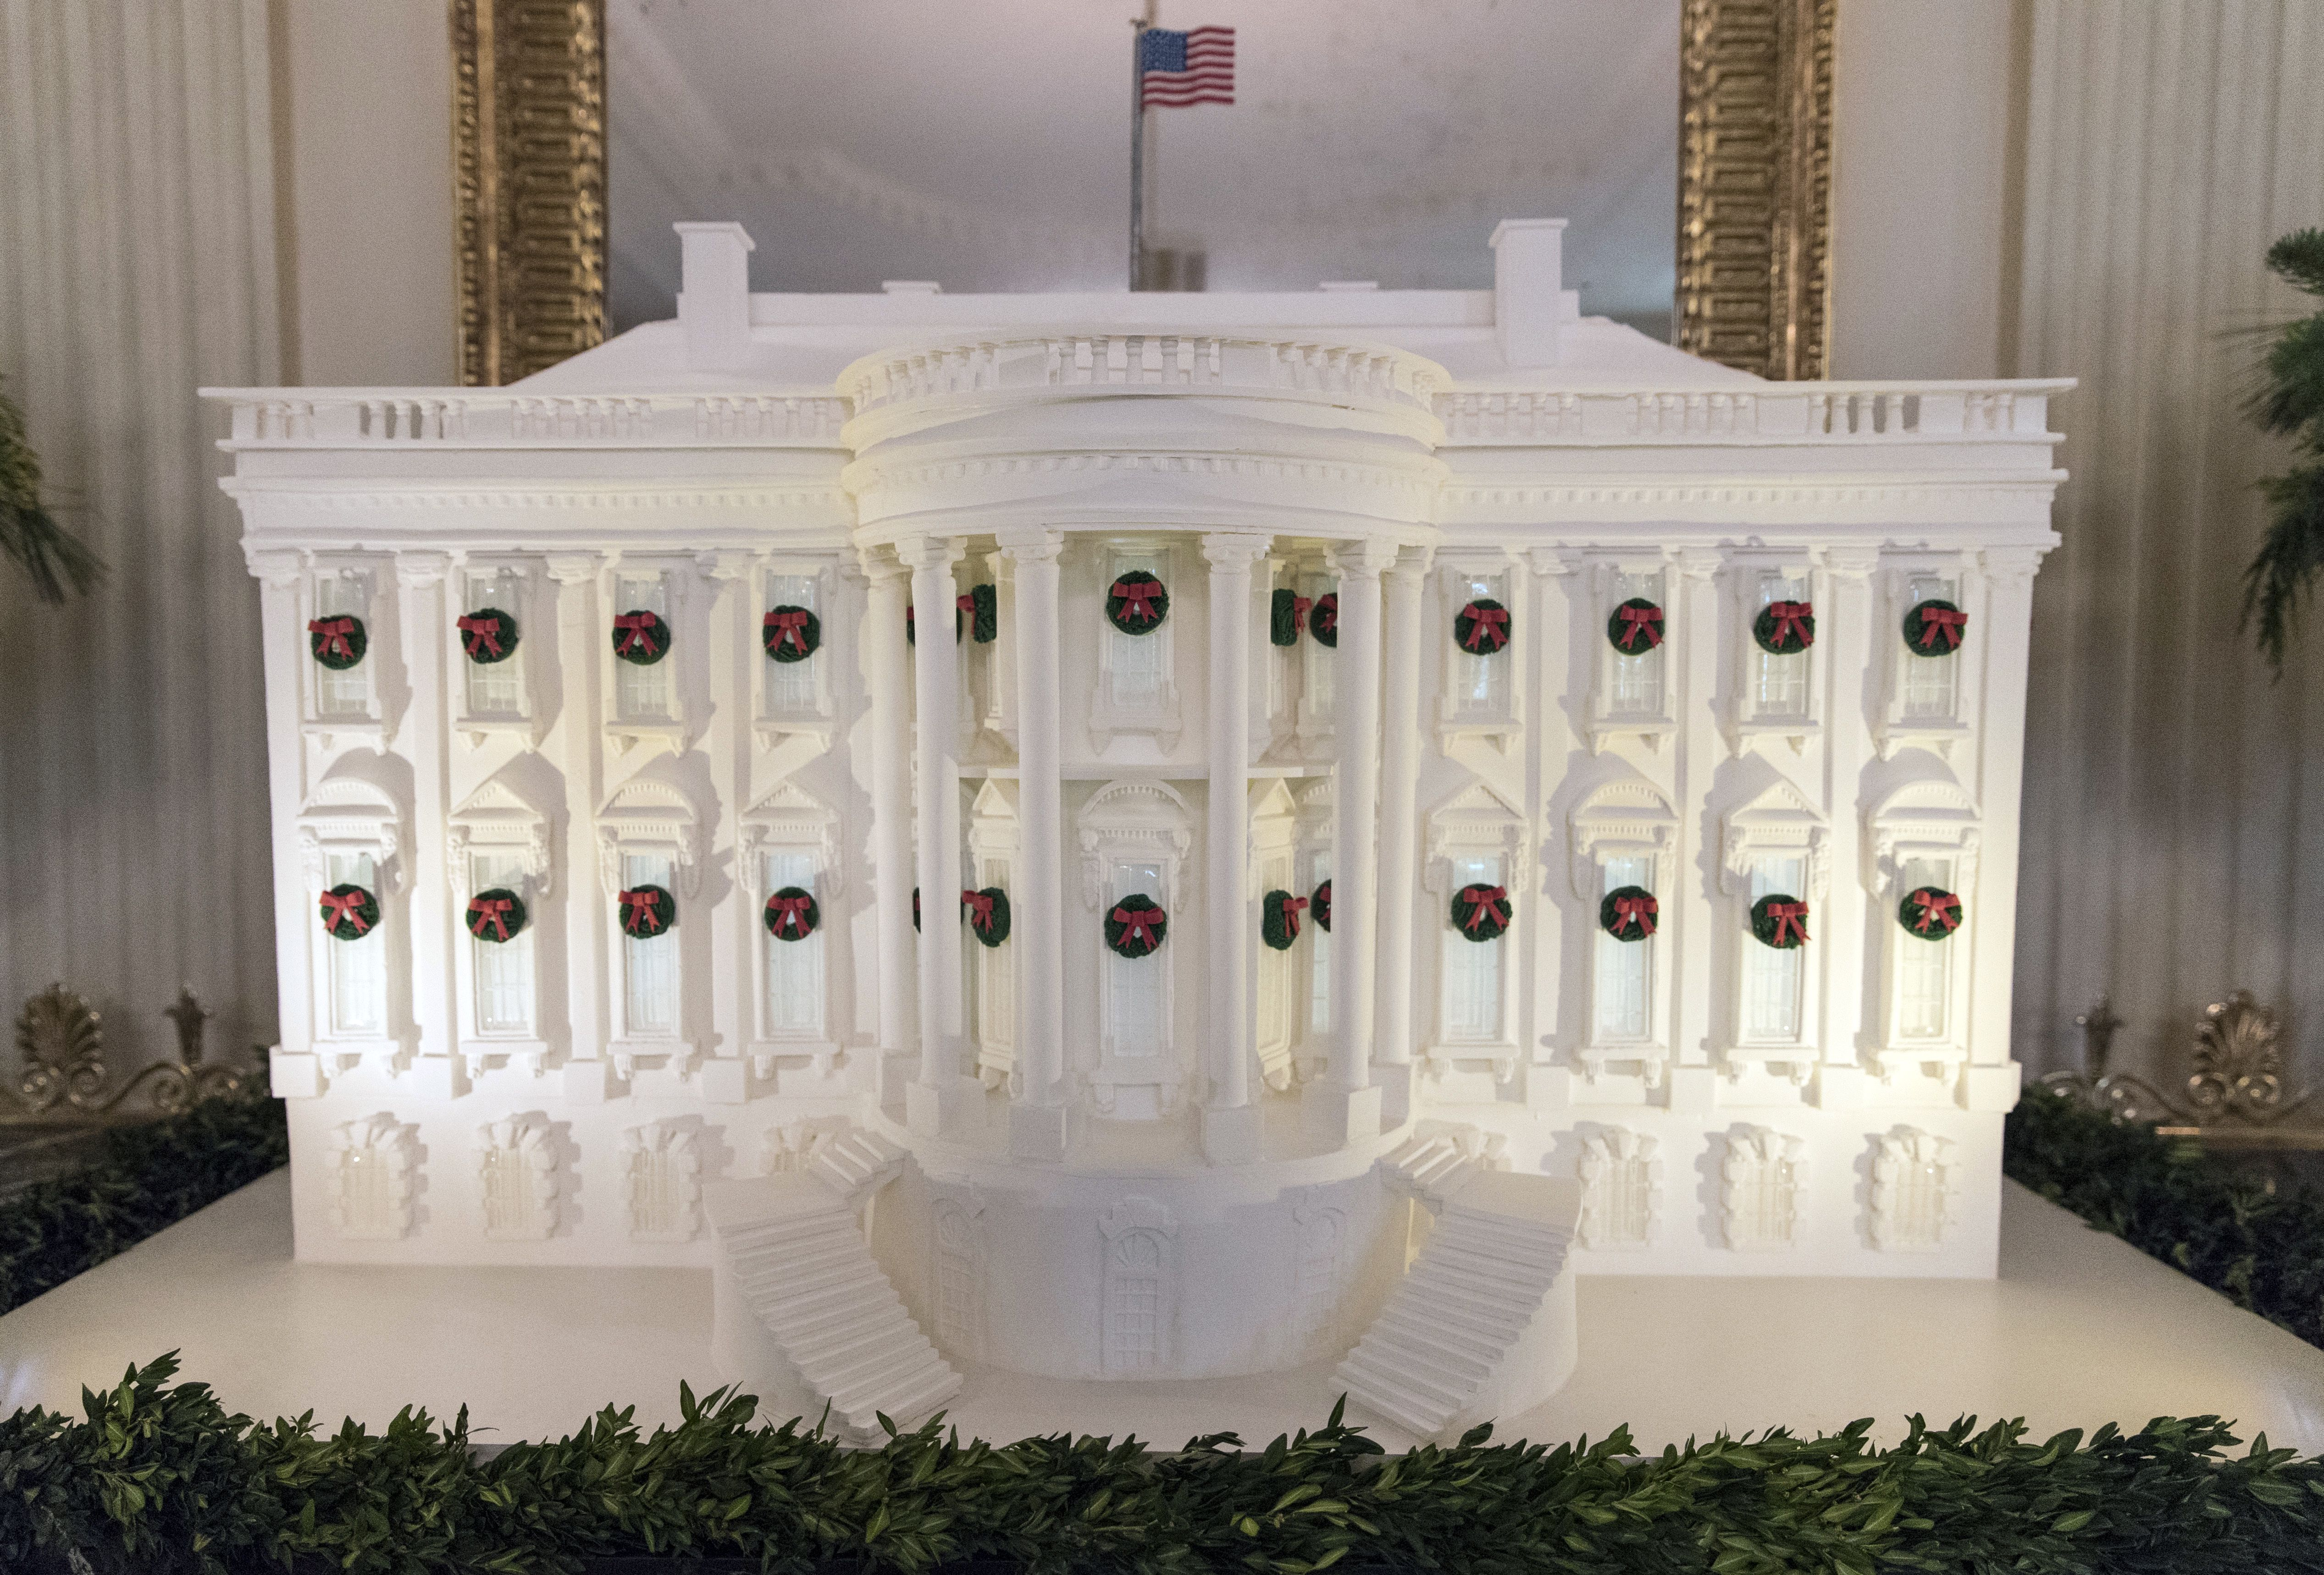 The gingerbread White House is seen in the East Dining Room during a media preview of the 2017 holiday decorations at the White House in Washington, D.C., Nov. 27, 2017.